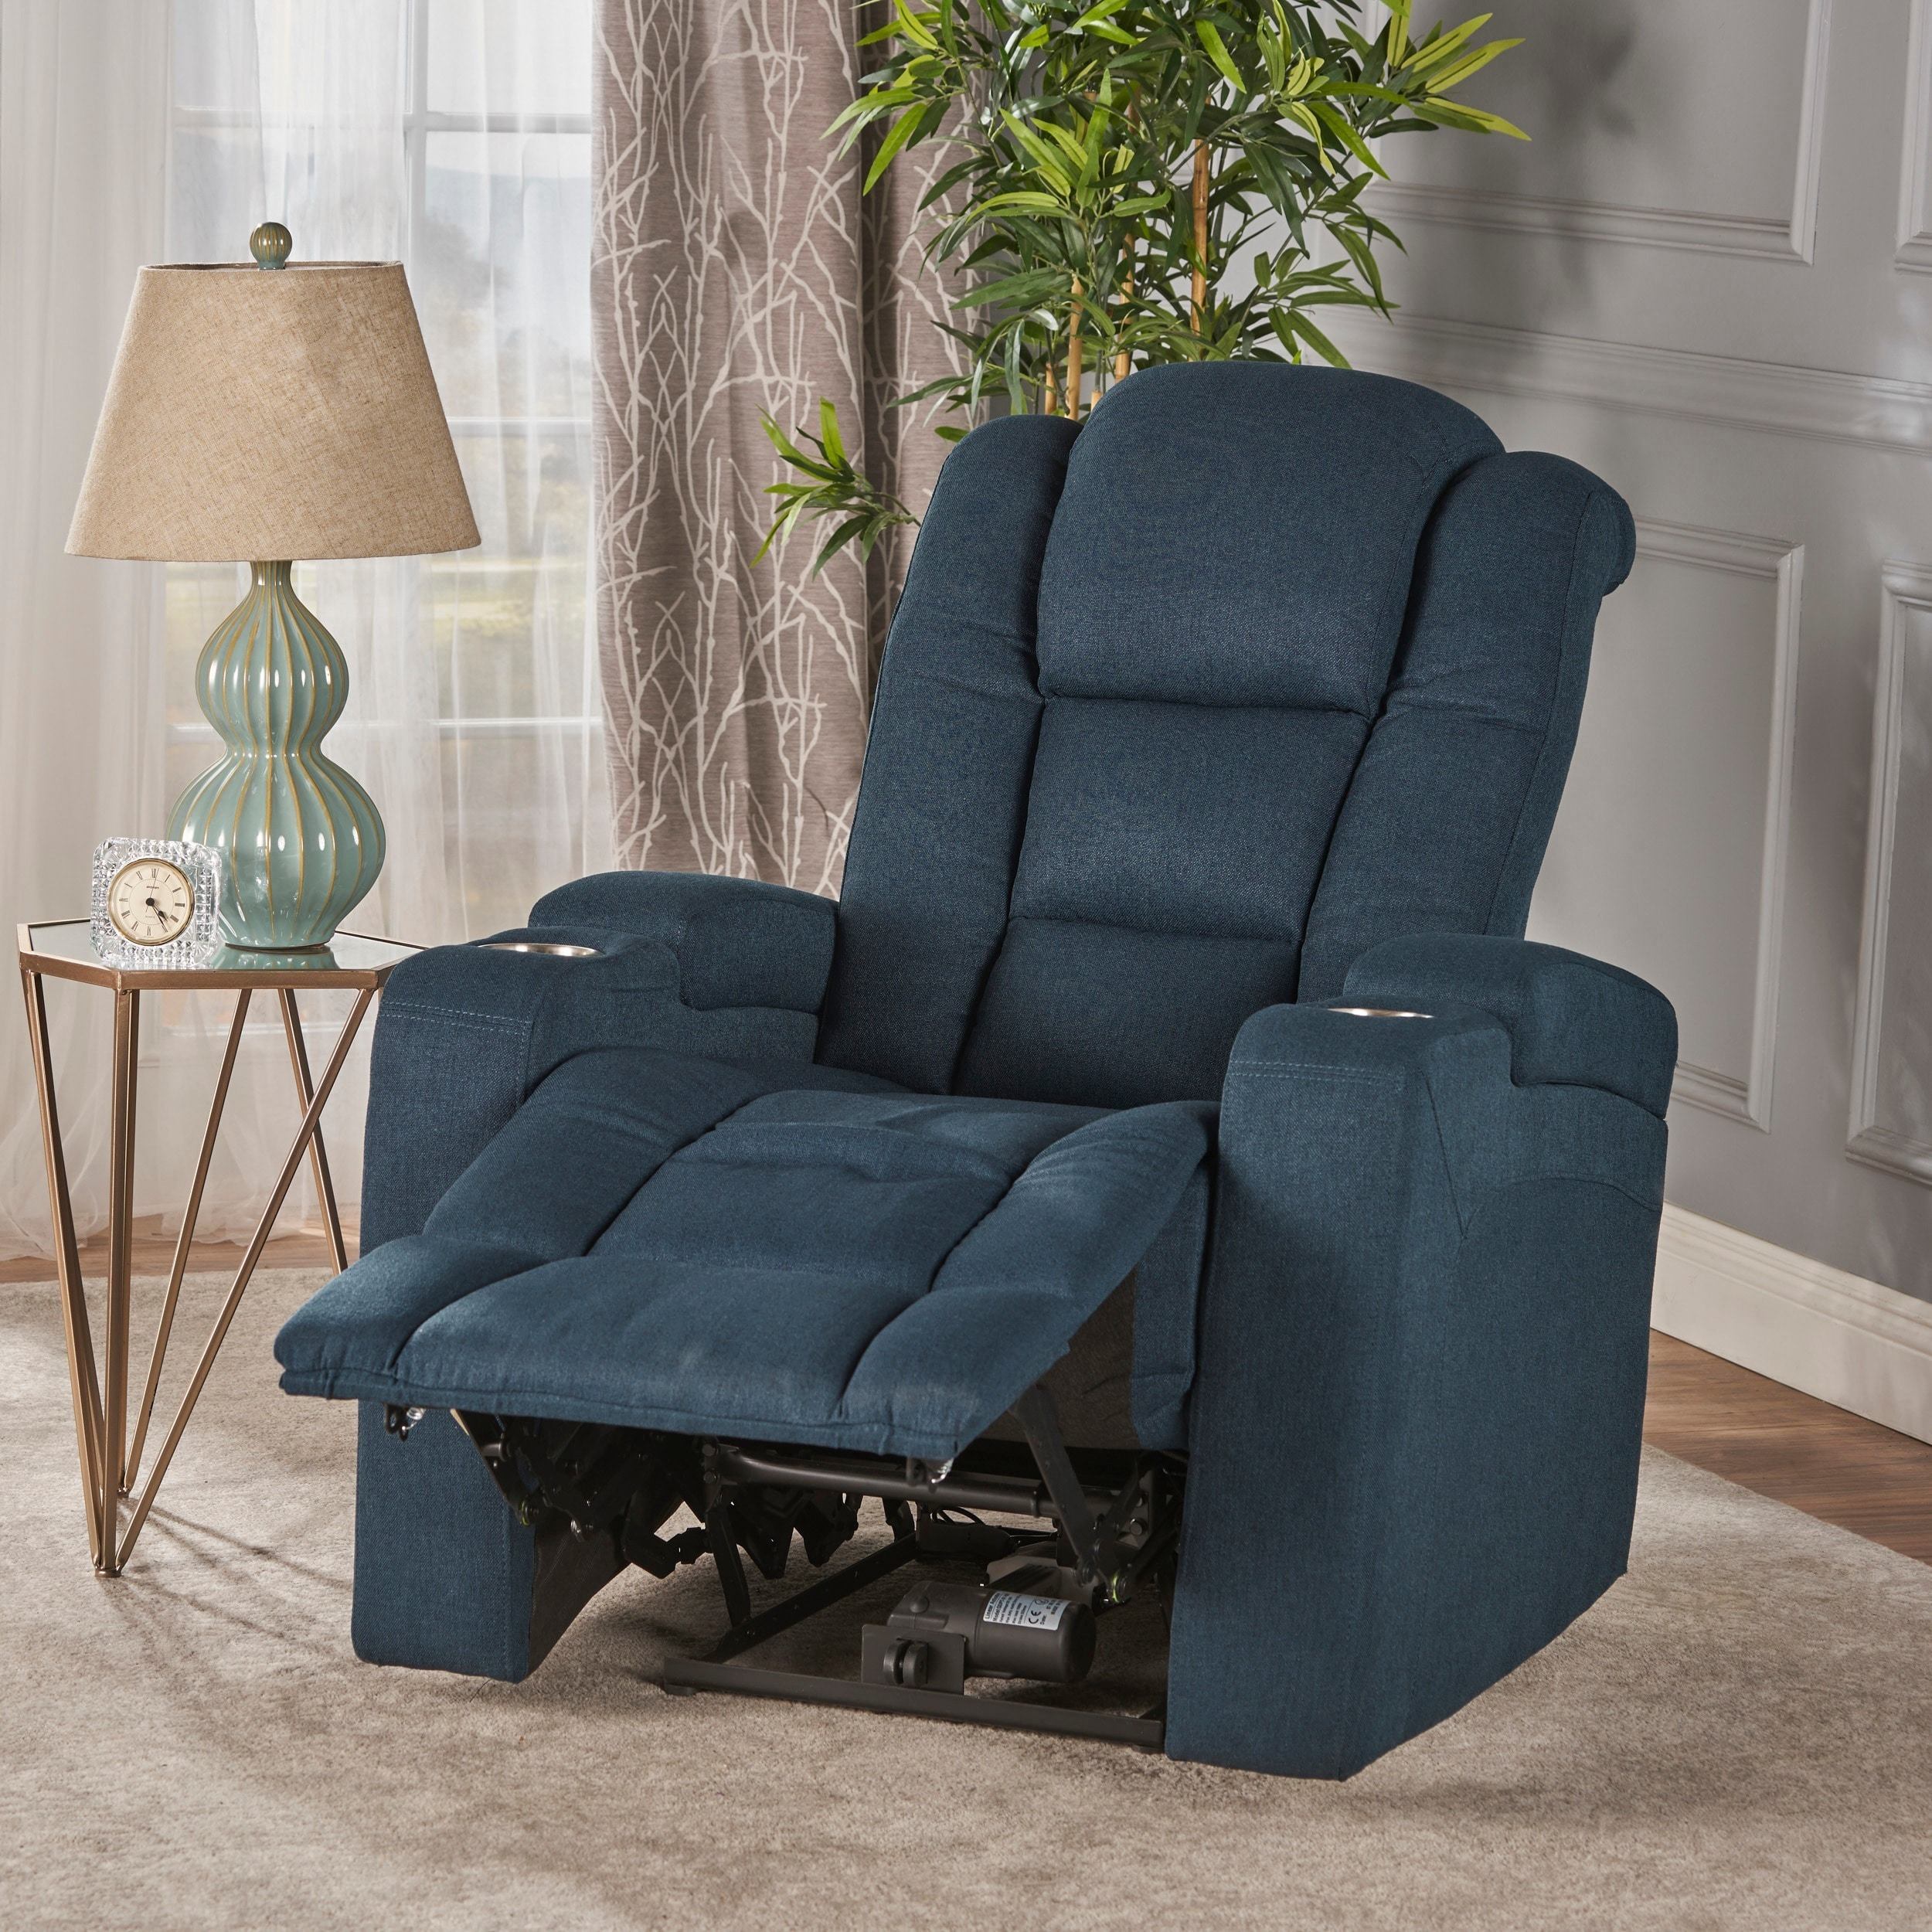 Charmant Shop Emersyn Fabric Power Recliner With Arm Storage U0026 USB Cord By  Christopher Knight Home   Free Shipping Today   Overstock.com   17570814